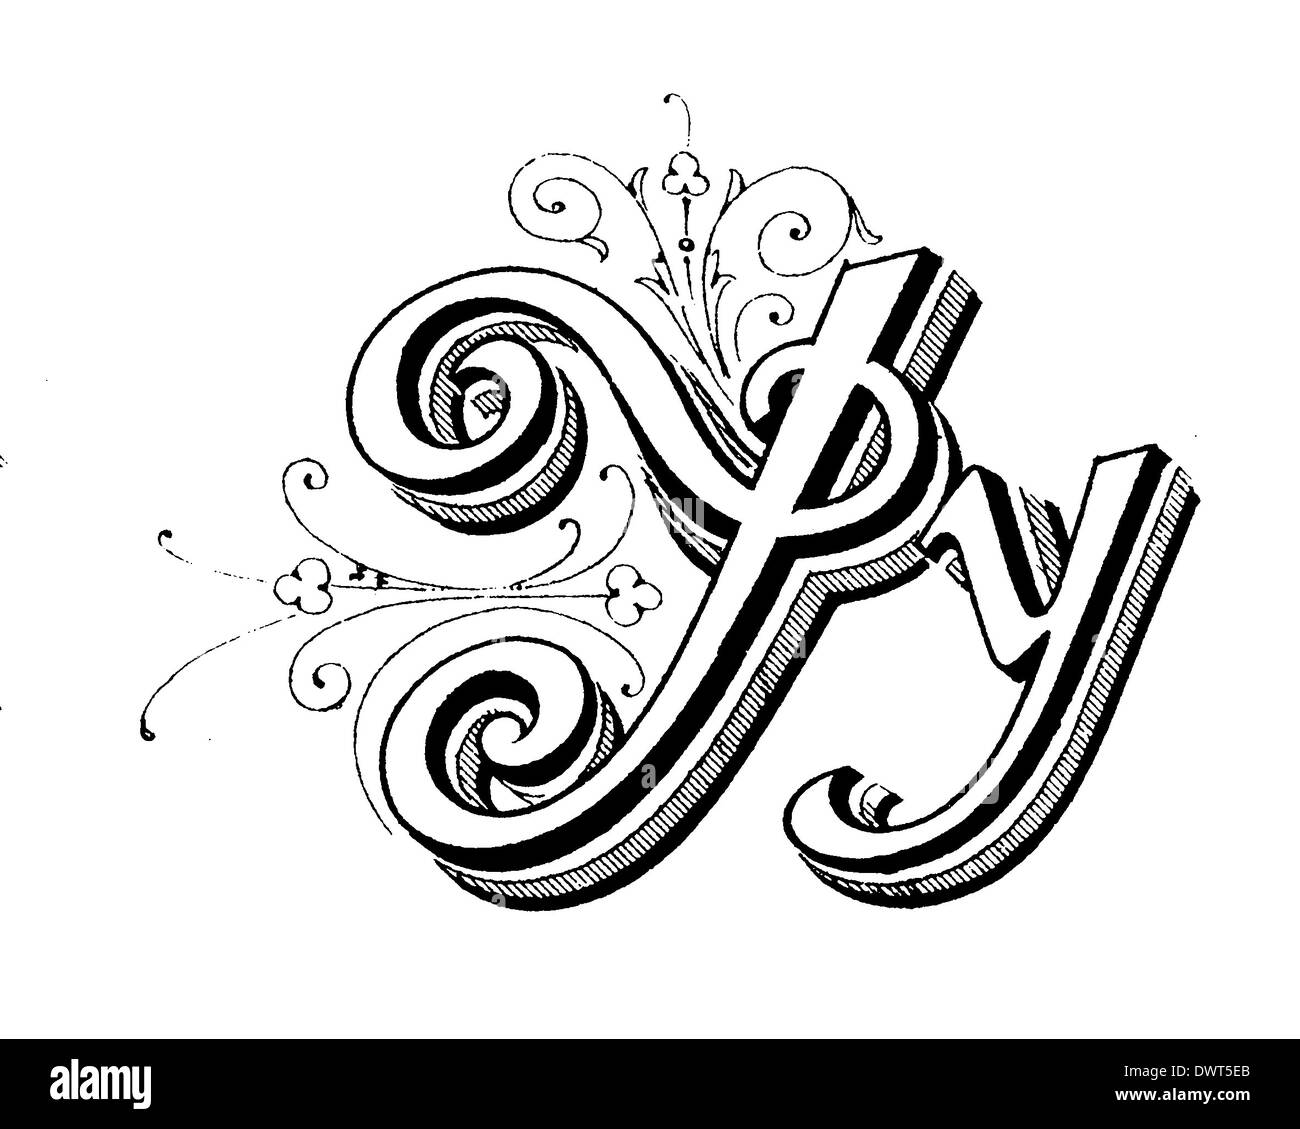 Alphabetic Character Letter Y